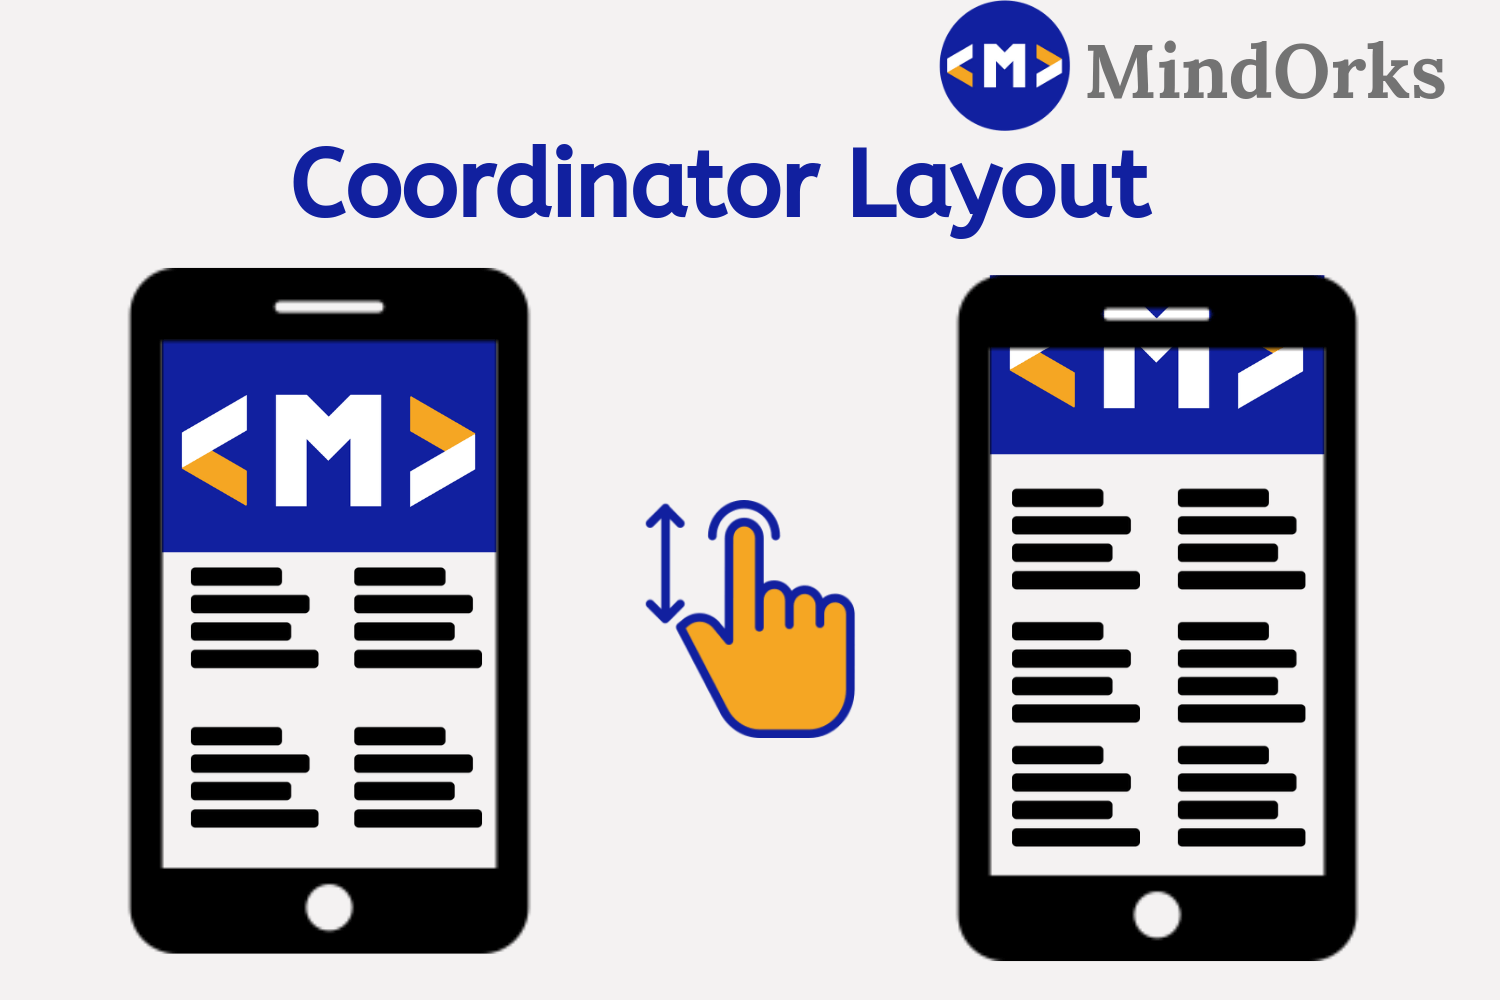 Using Coordinator Layout in Android